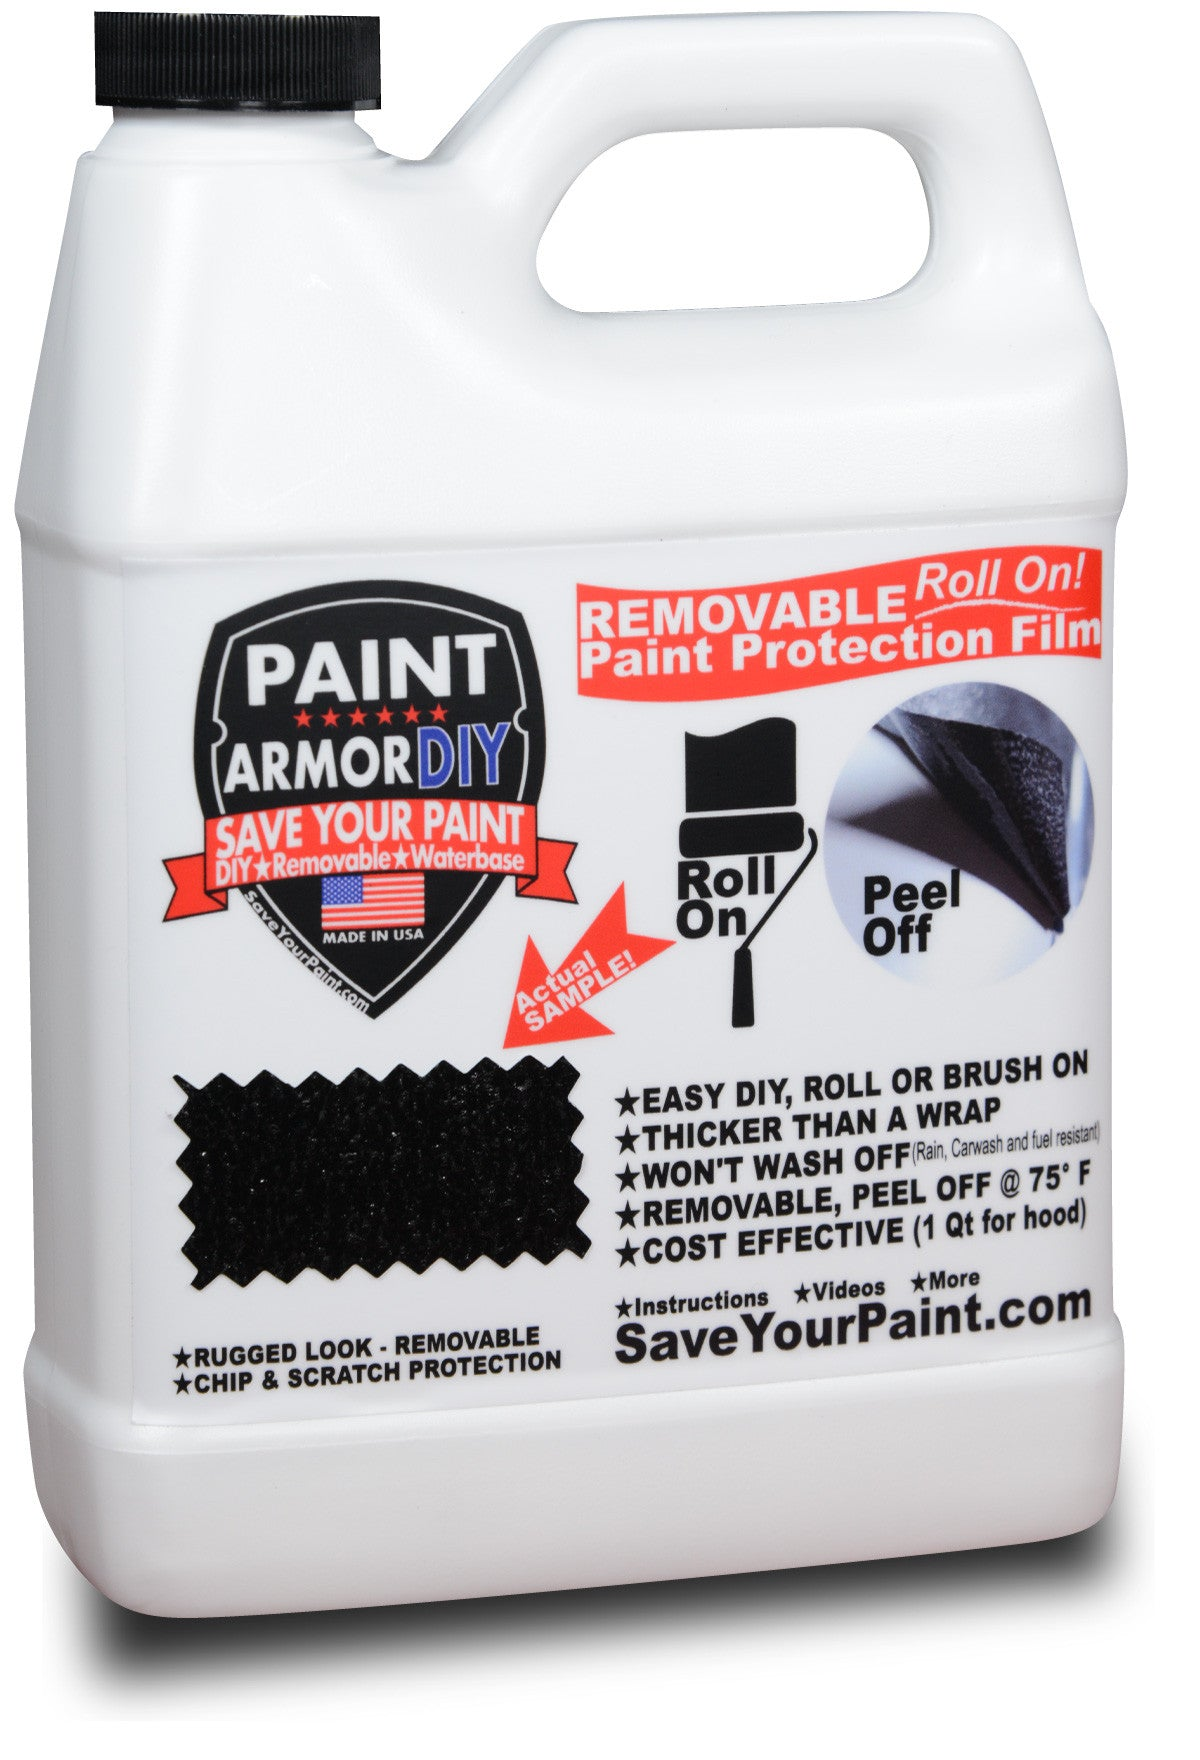 PaintArmorDIY Bottle - Removable Paint Protection - Clear Bra - Vehicle Wrap